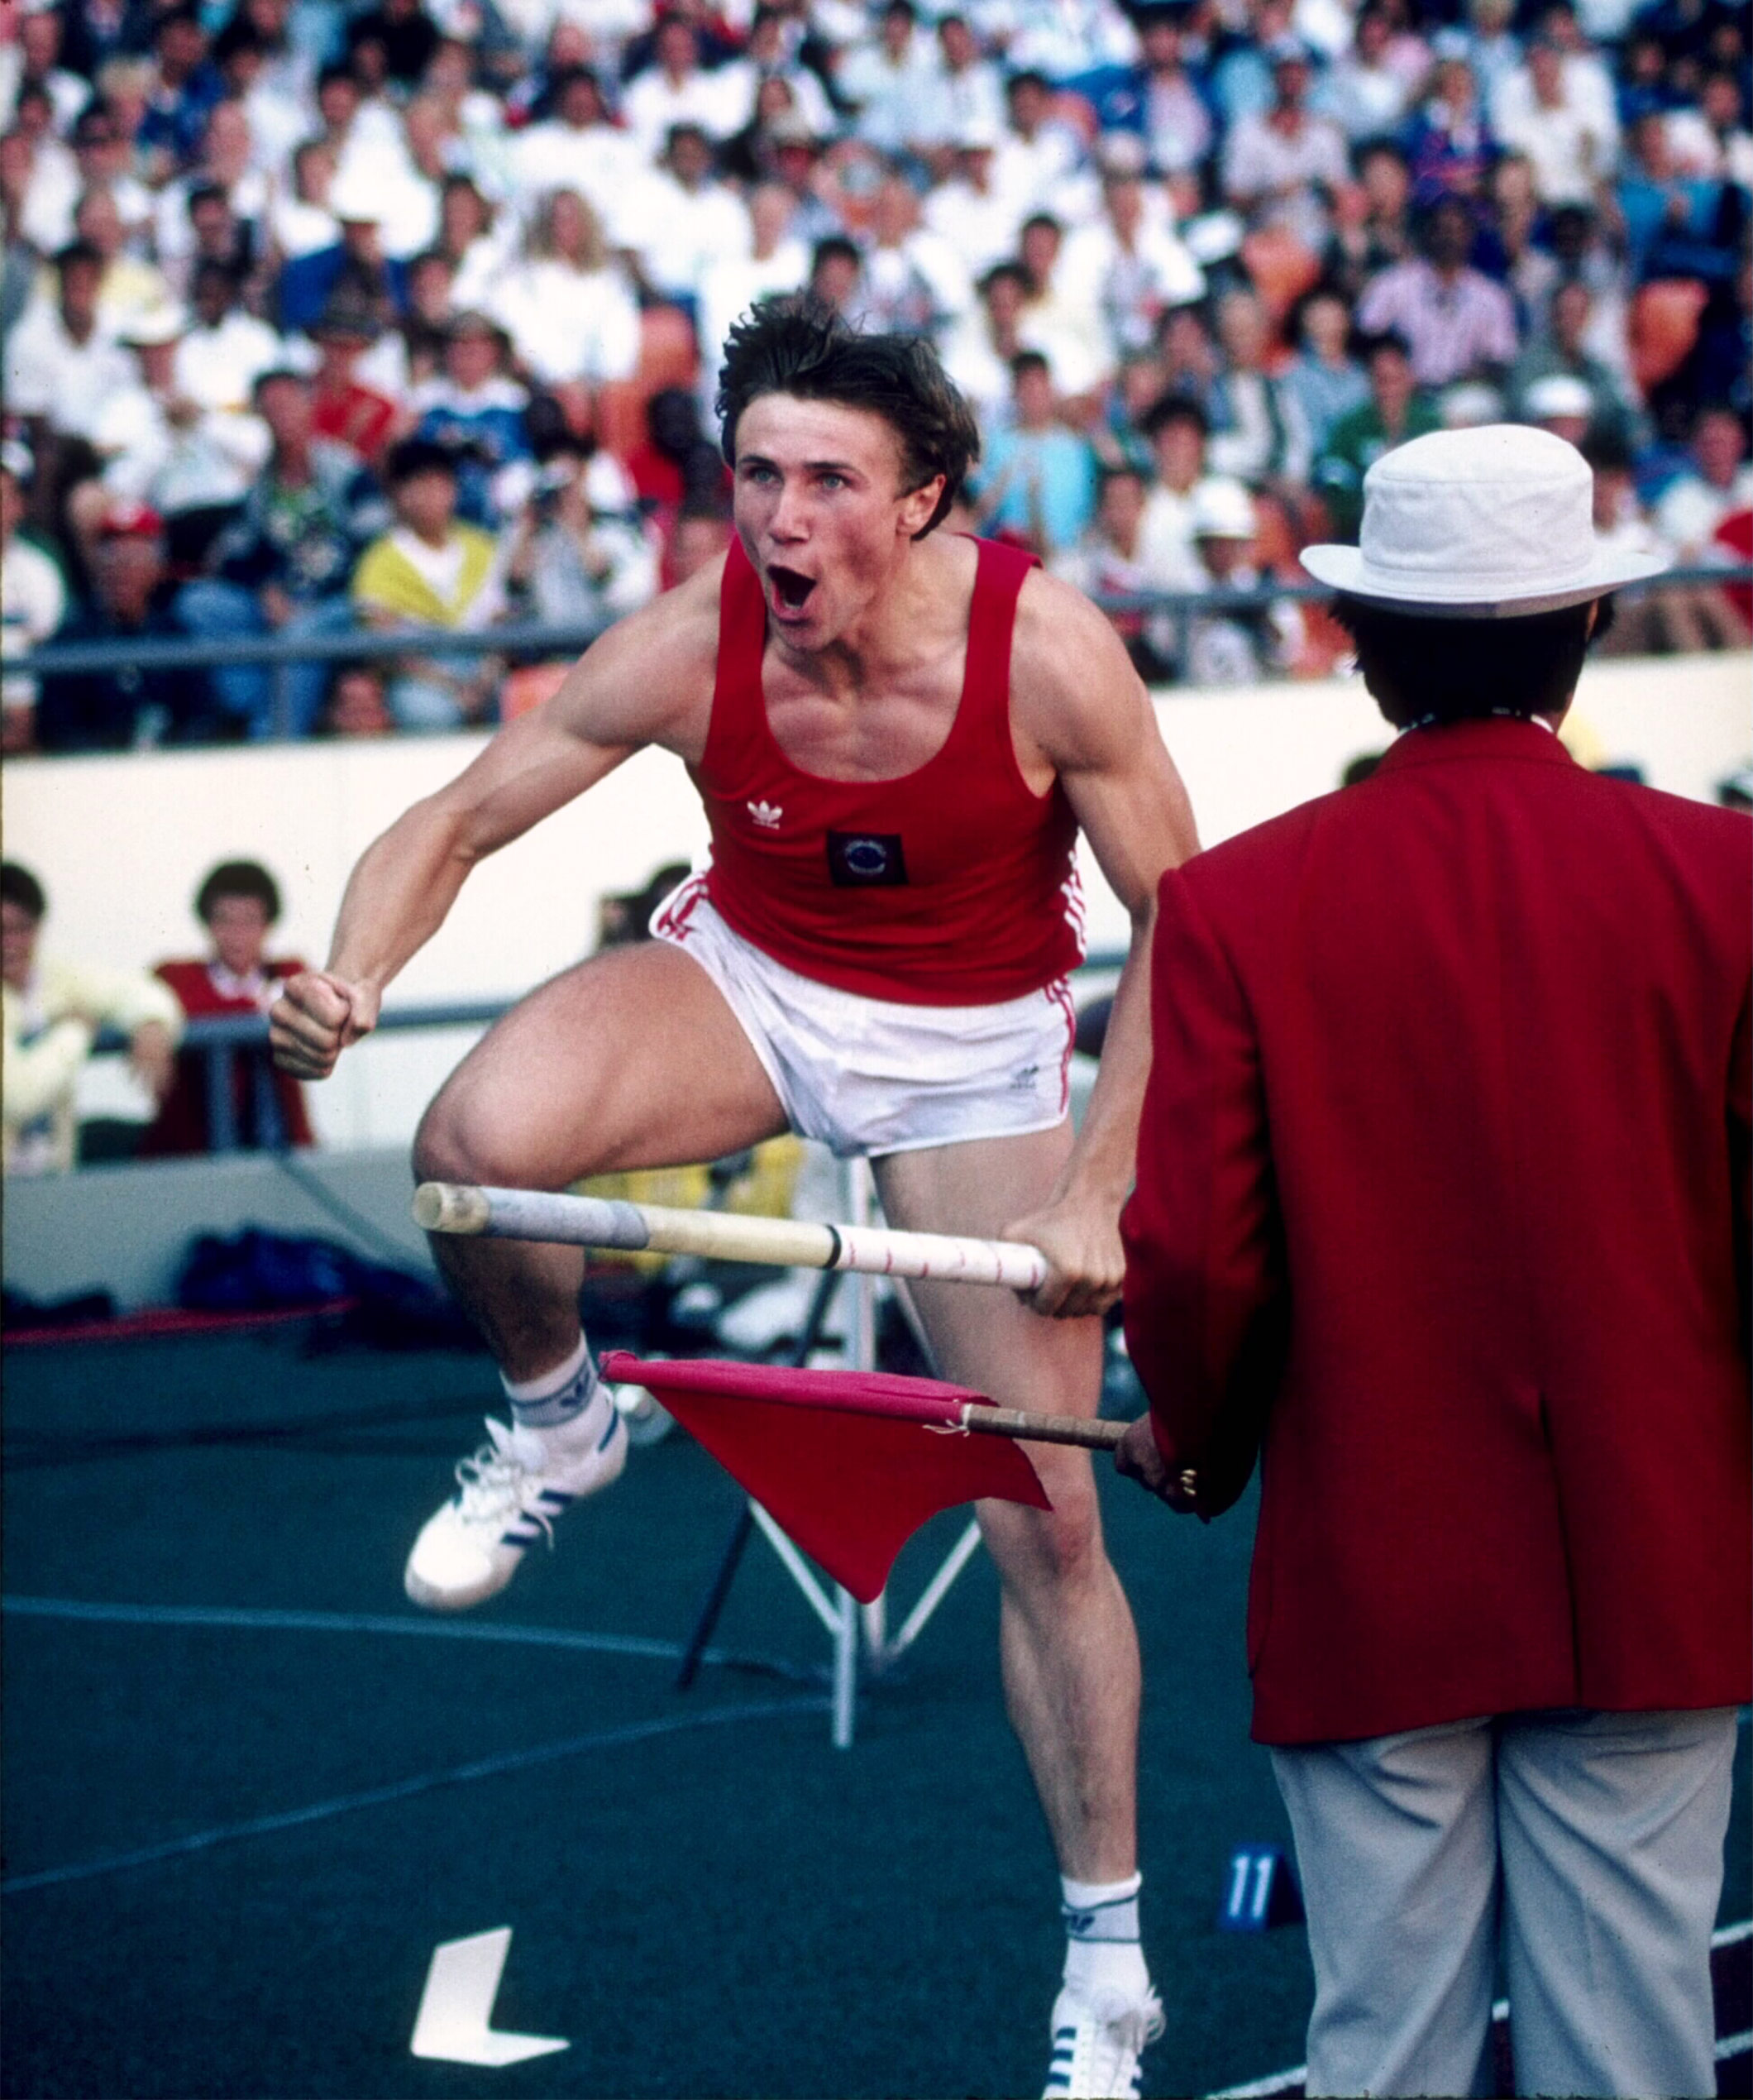 Sergei Bubka reacts during the opening height of the men's pole vault competition during the 1988 Summer Olympics Games on September 28, 1988 in Seoul, South Korea.